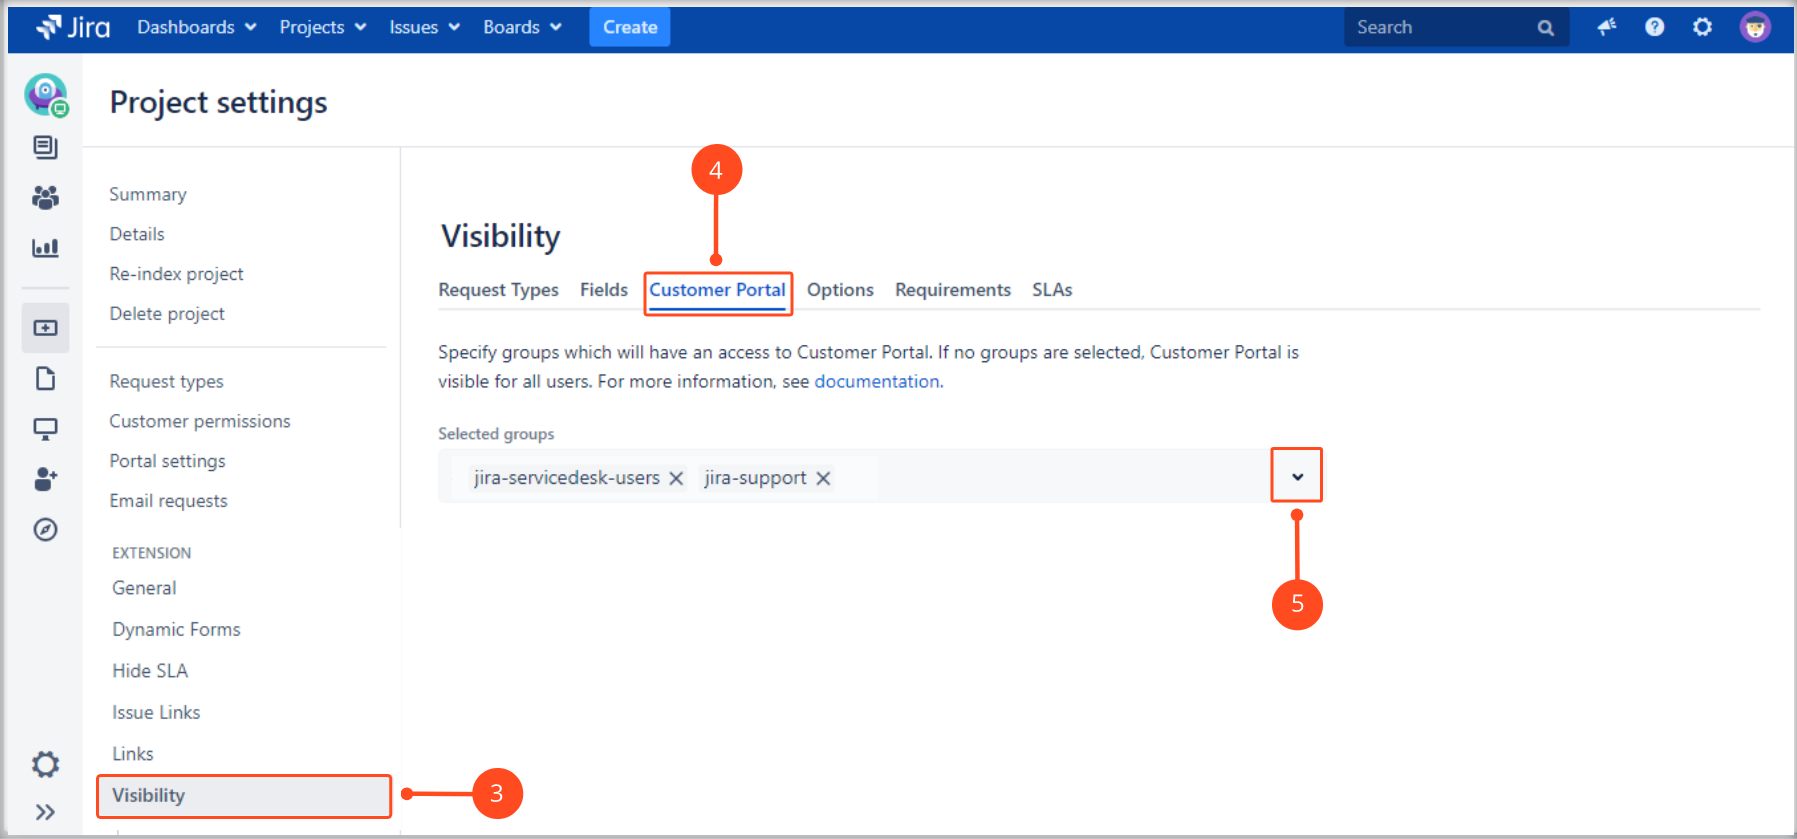 Setting a visibility with Extension for Jira Service Management by giving specific groups an access to the Customer Portal